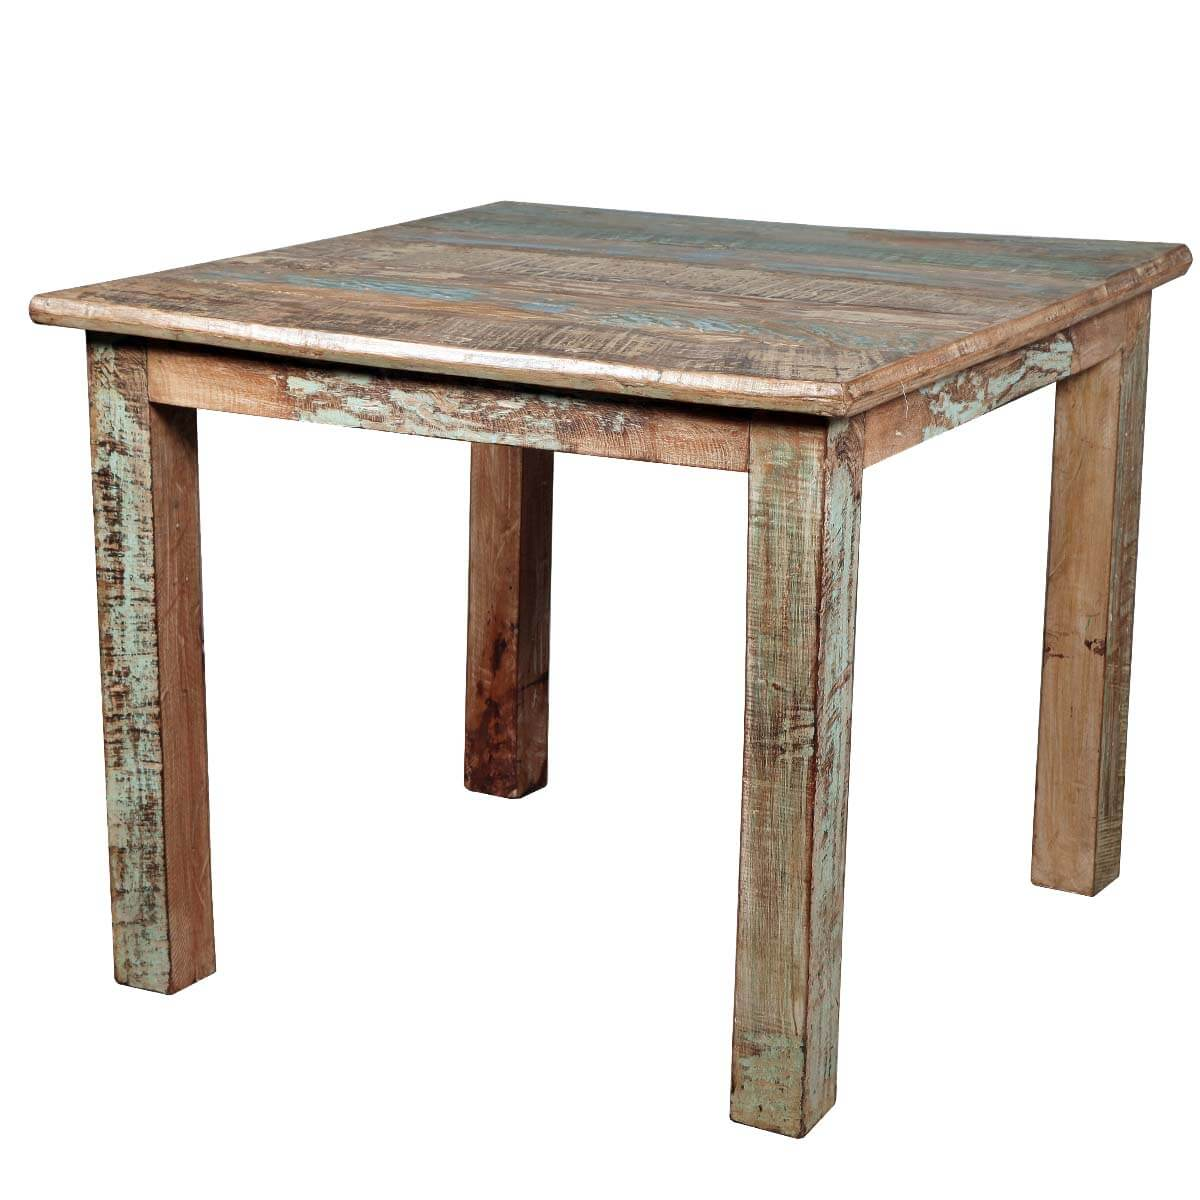 Distressed wood dining